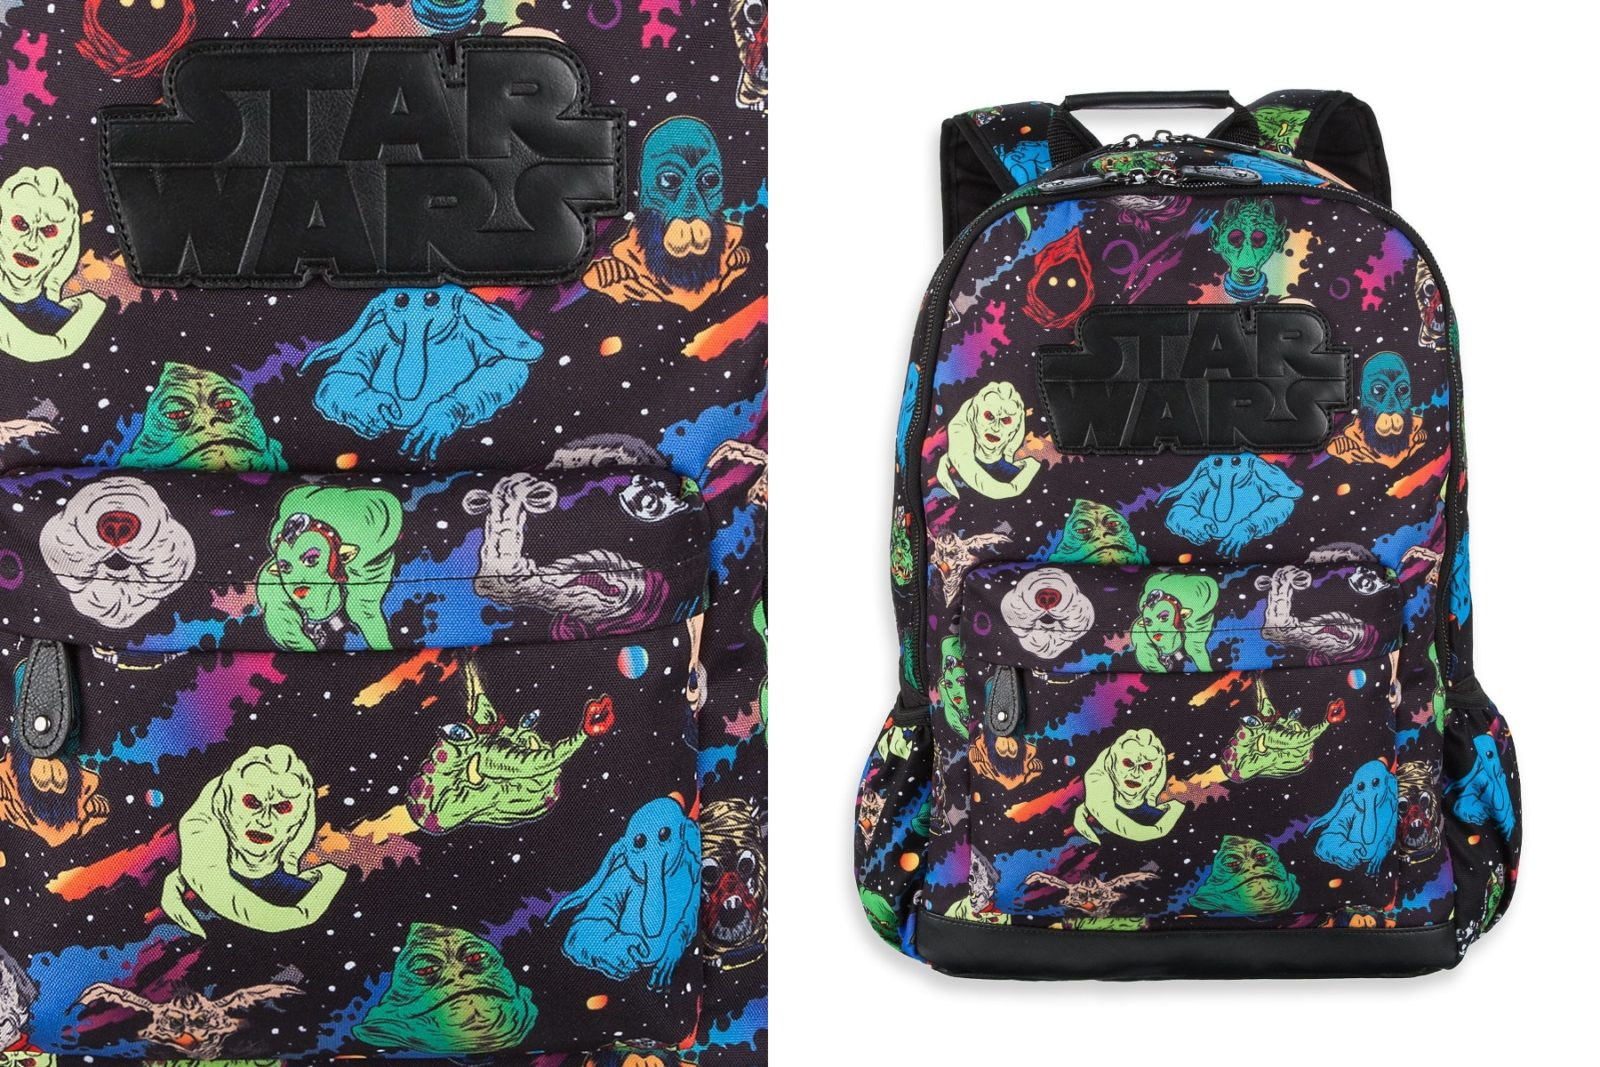 Star Wars Character Print Backpack at Shop Disney